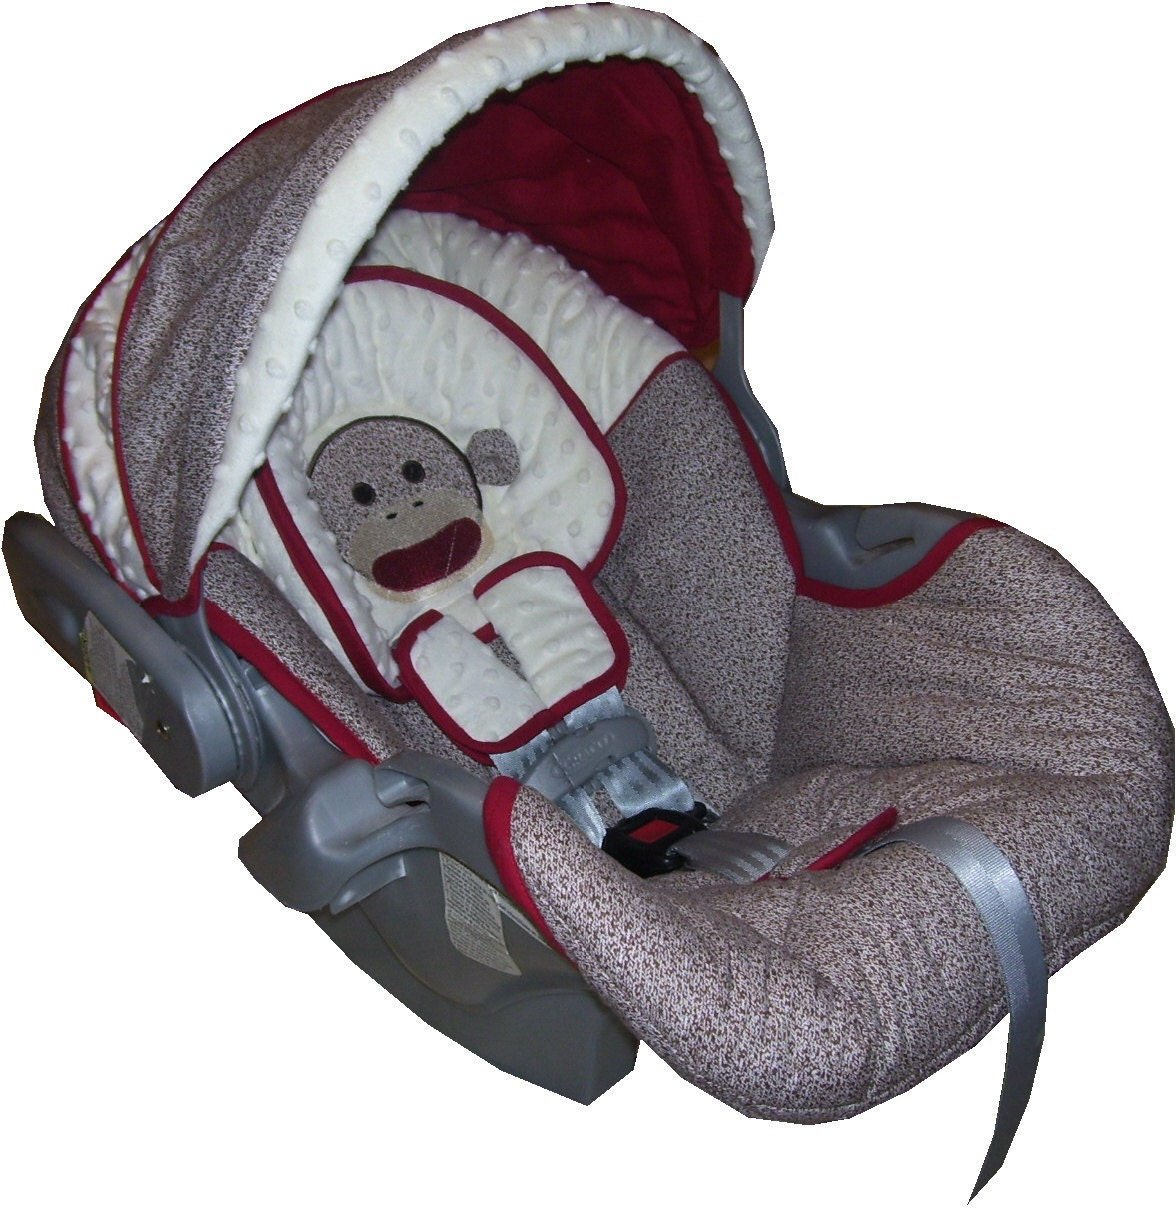 Graco SnugRide Car Seat Replacement Cover By Yourcarseatcover